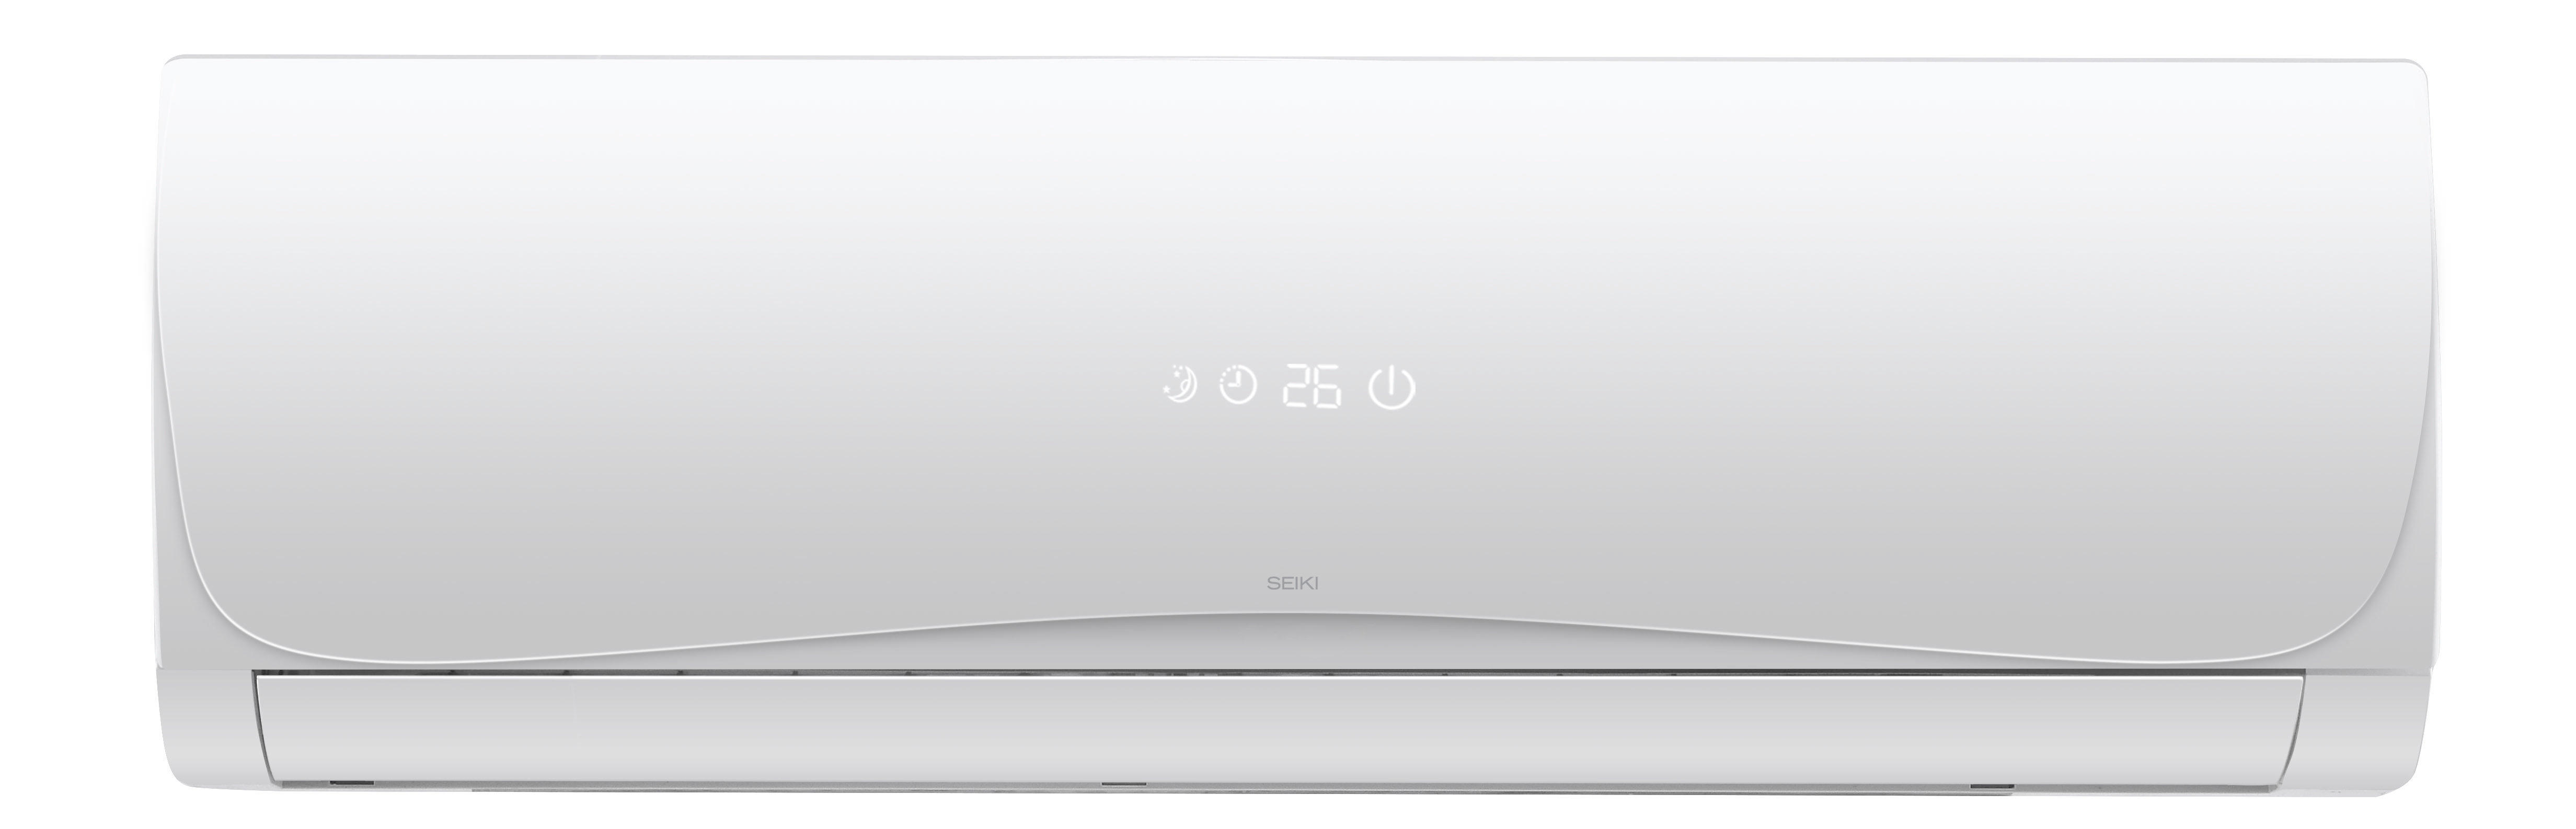 Seiki SC-5100AU6A 5.1KW Reverse Cycle Split System Inverter Air Conditioner - FREE Delivery & Price Match* image